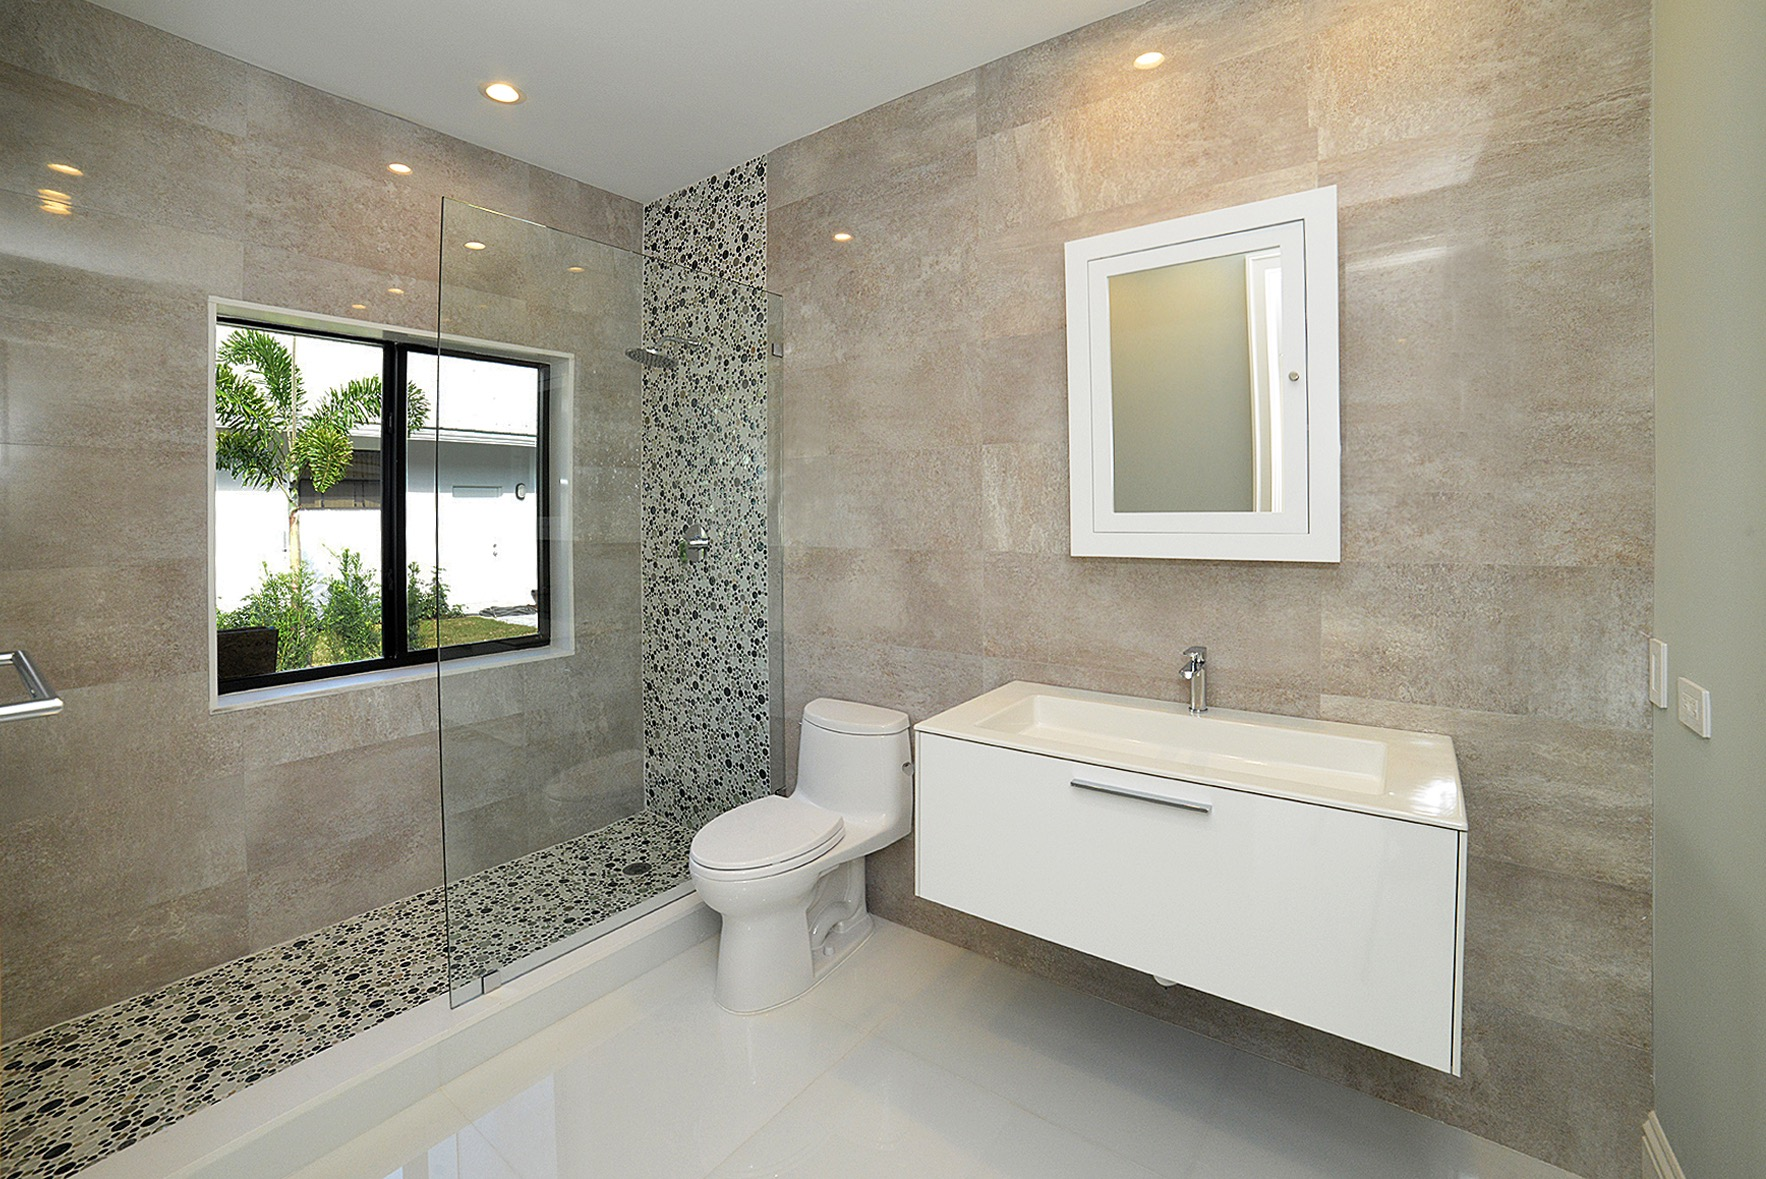 mag real estate & development construction general contractor builder renovation south florida boca raton new custom luxury home for sale interior design st. andrews country club 7026 ayrshire lane 17.jpg